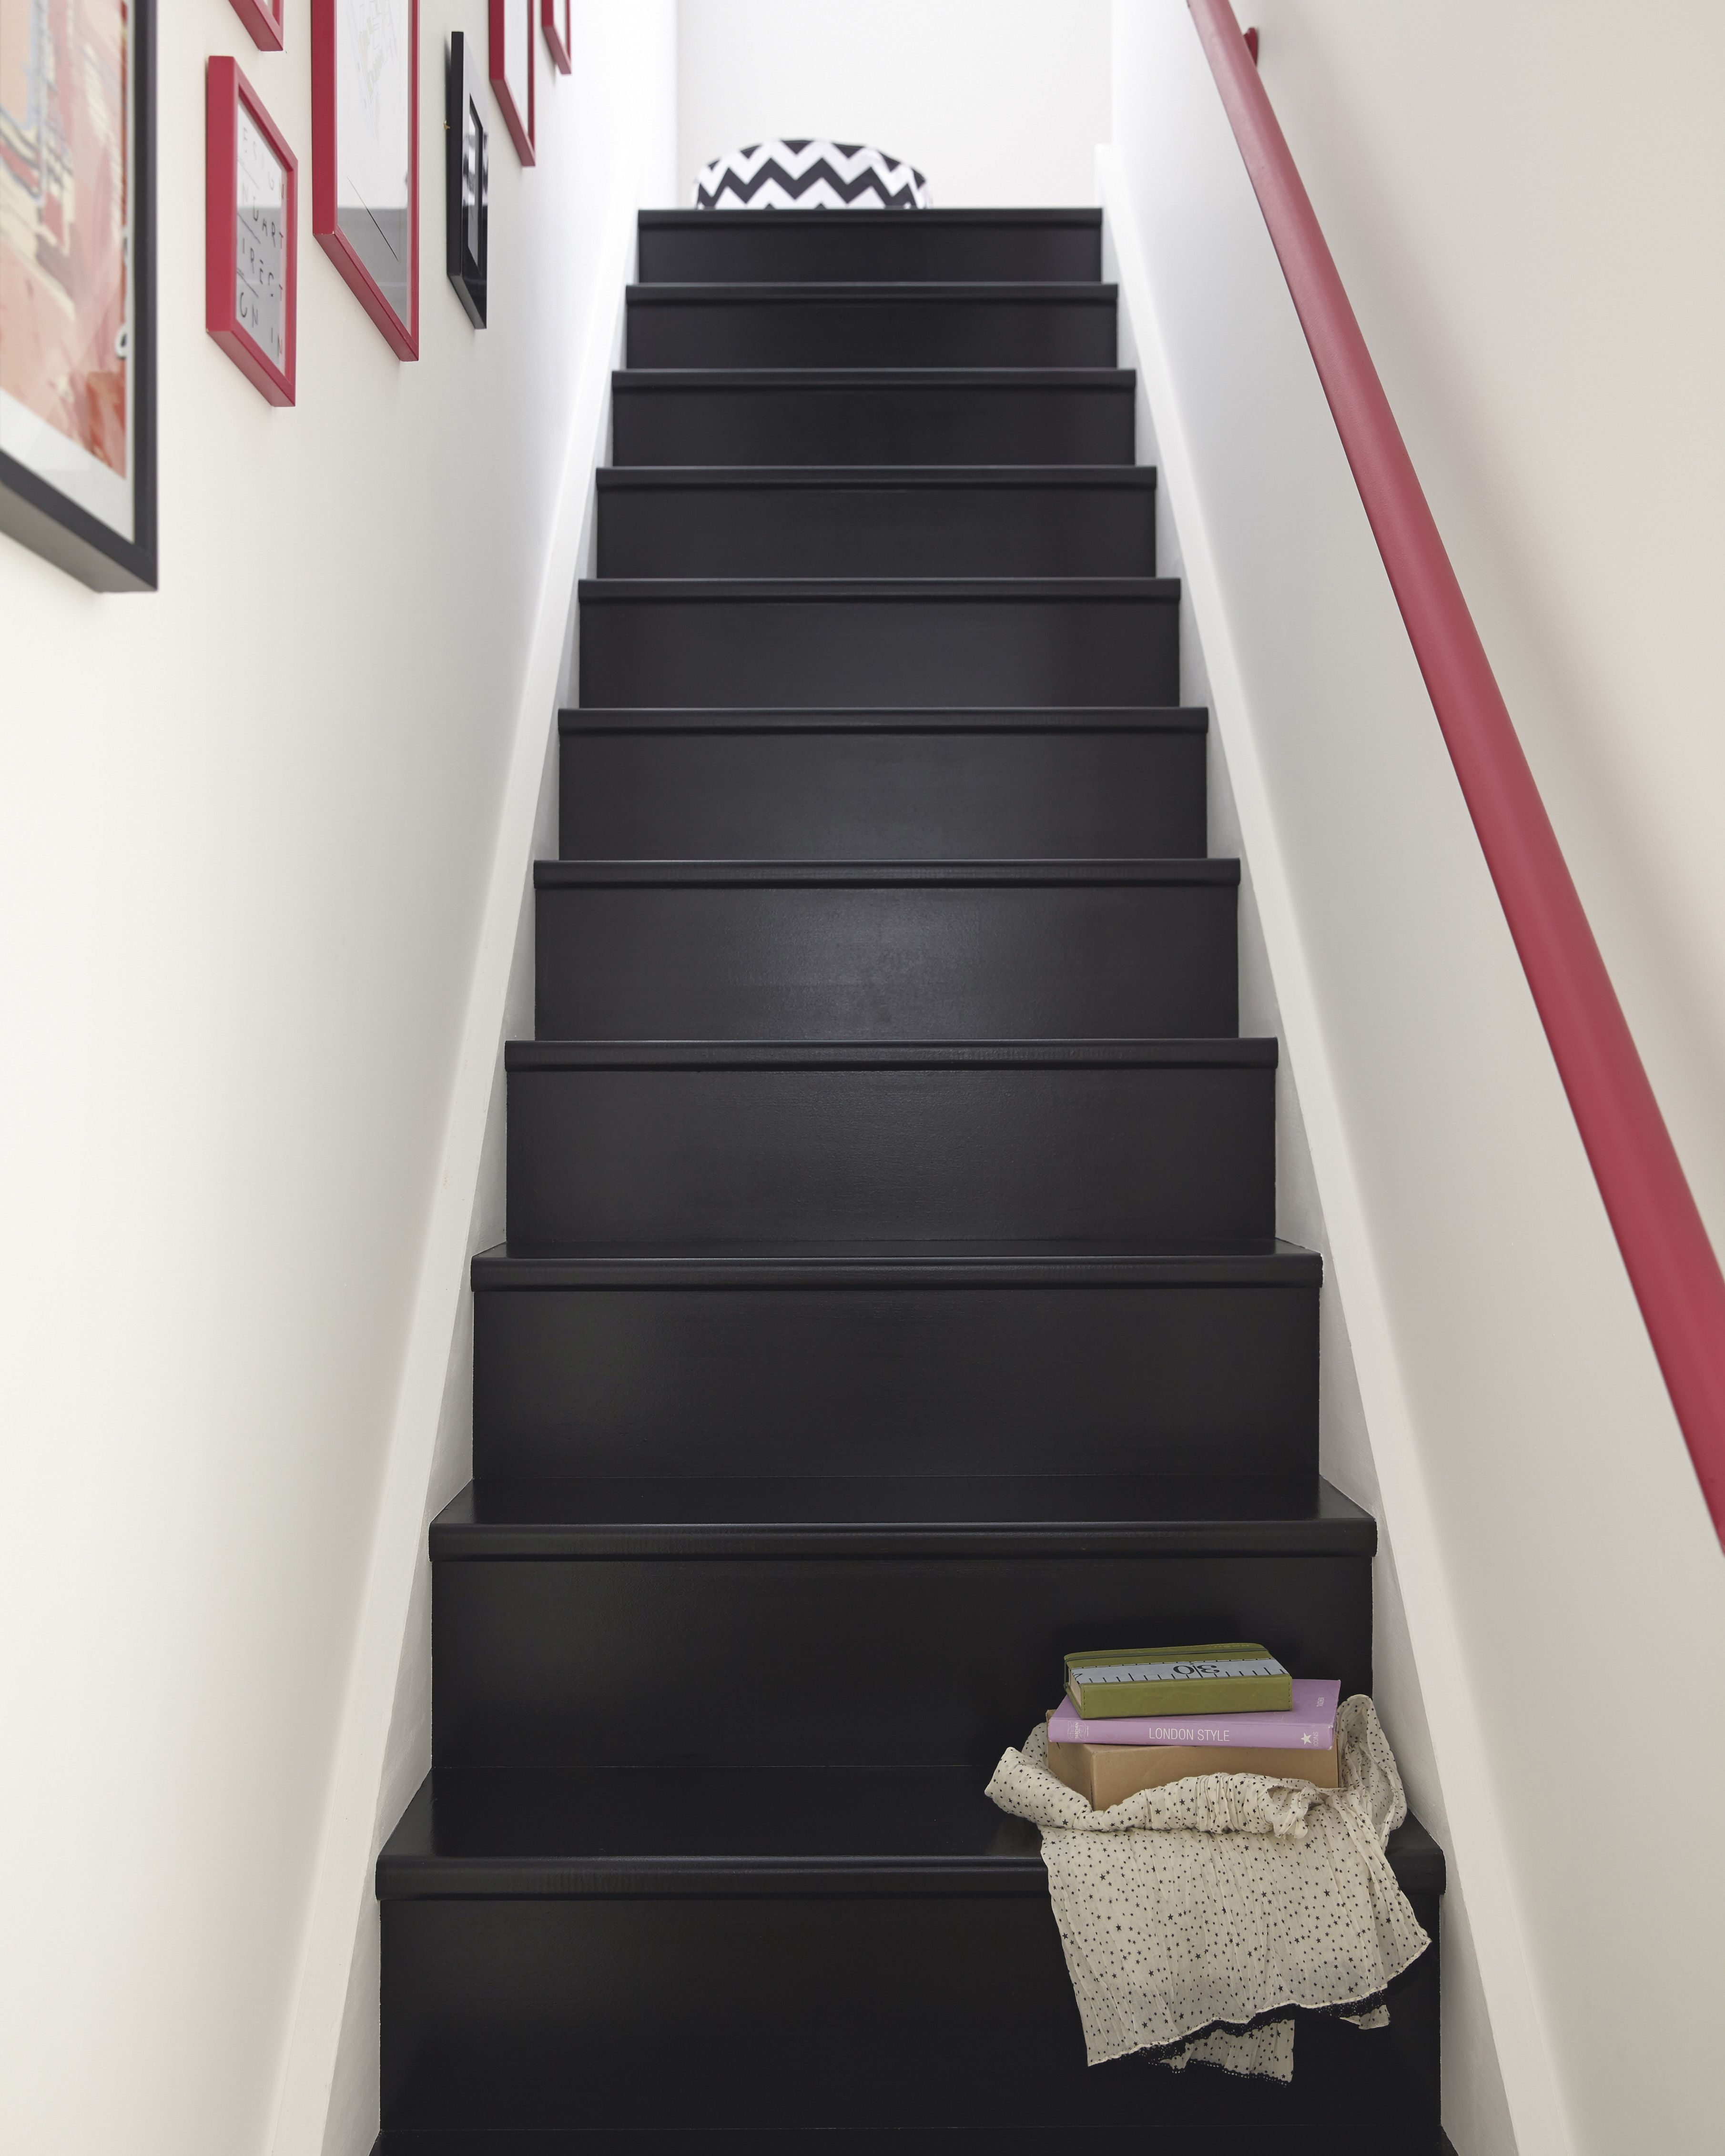 escalier lanc escalier escalierrelooke entr e et. Black Bedroom Furniture Sets. Home Design Ideas